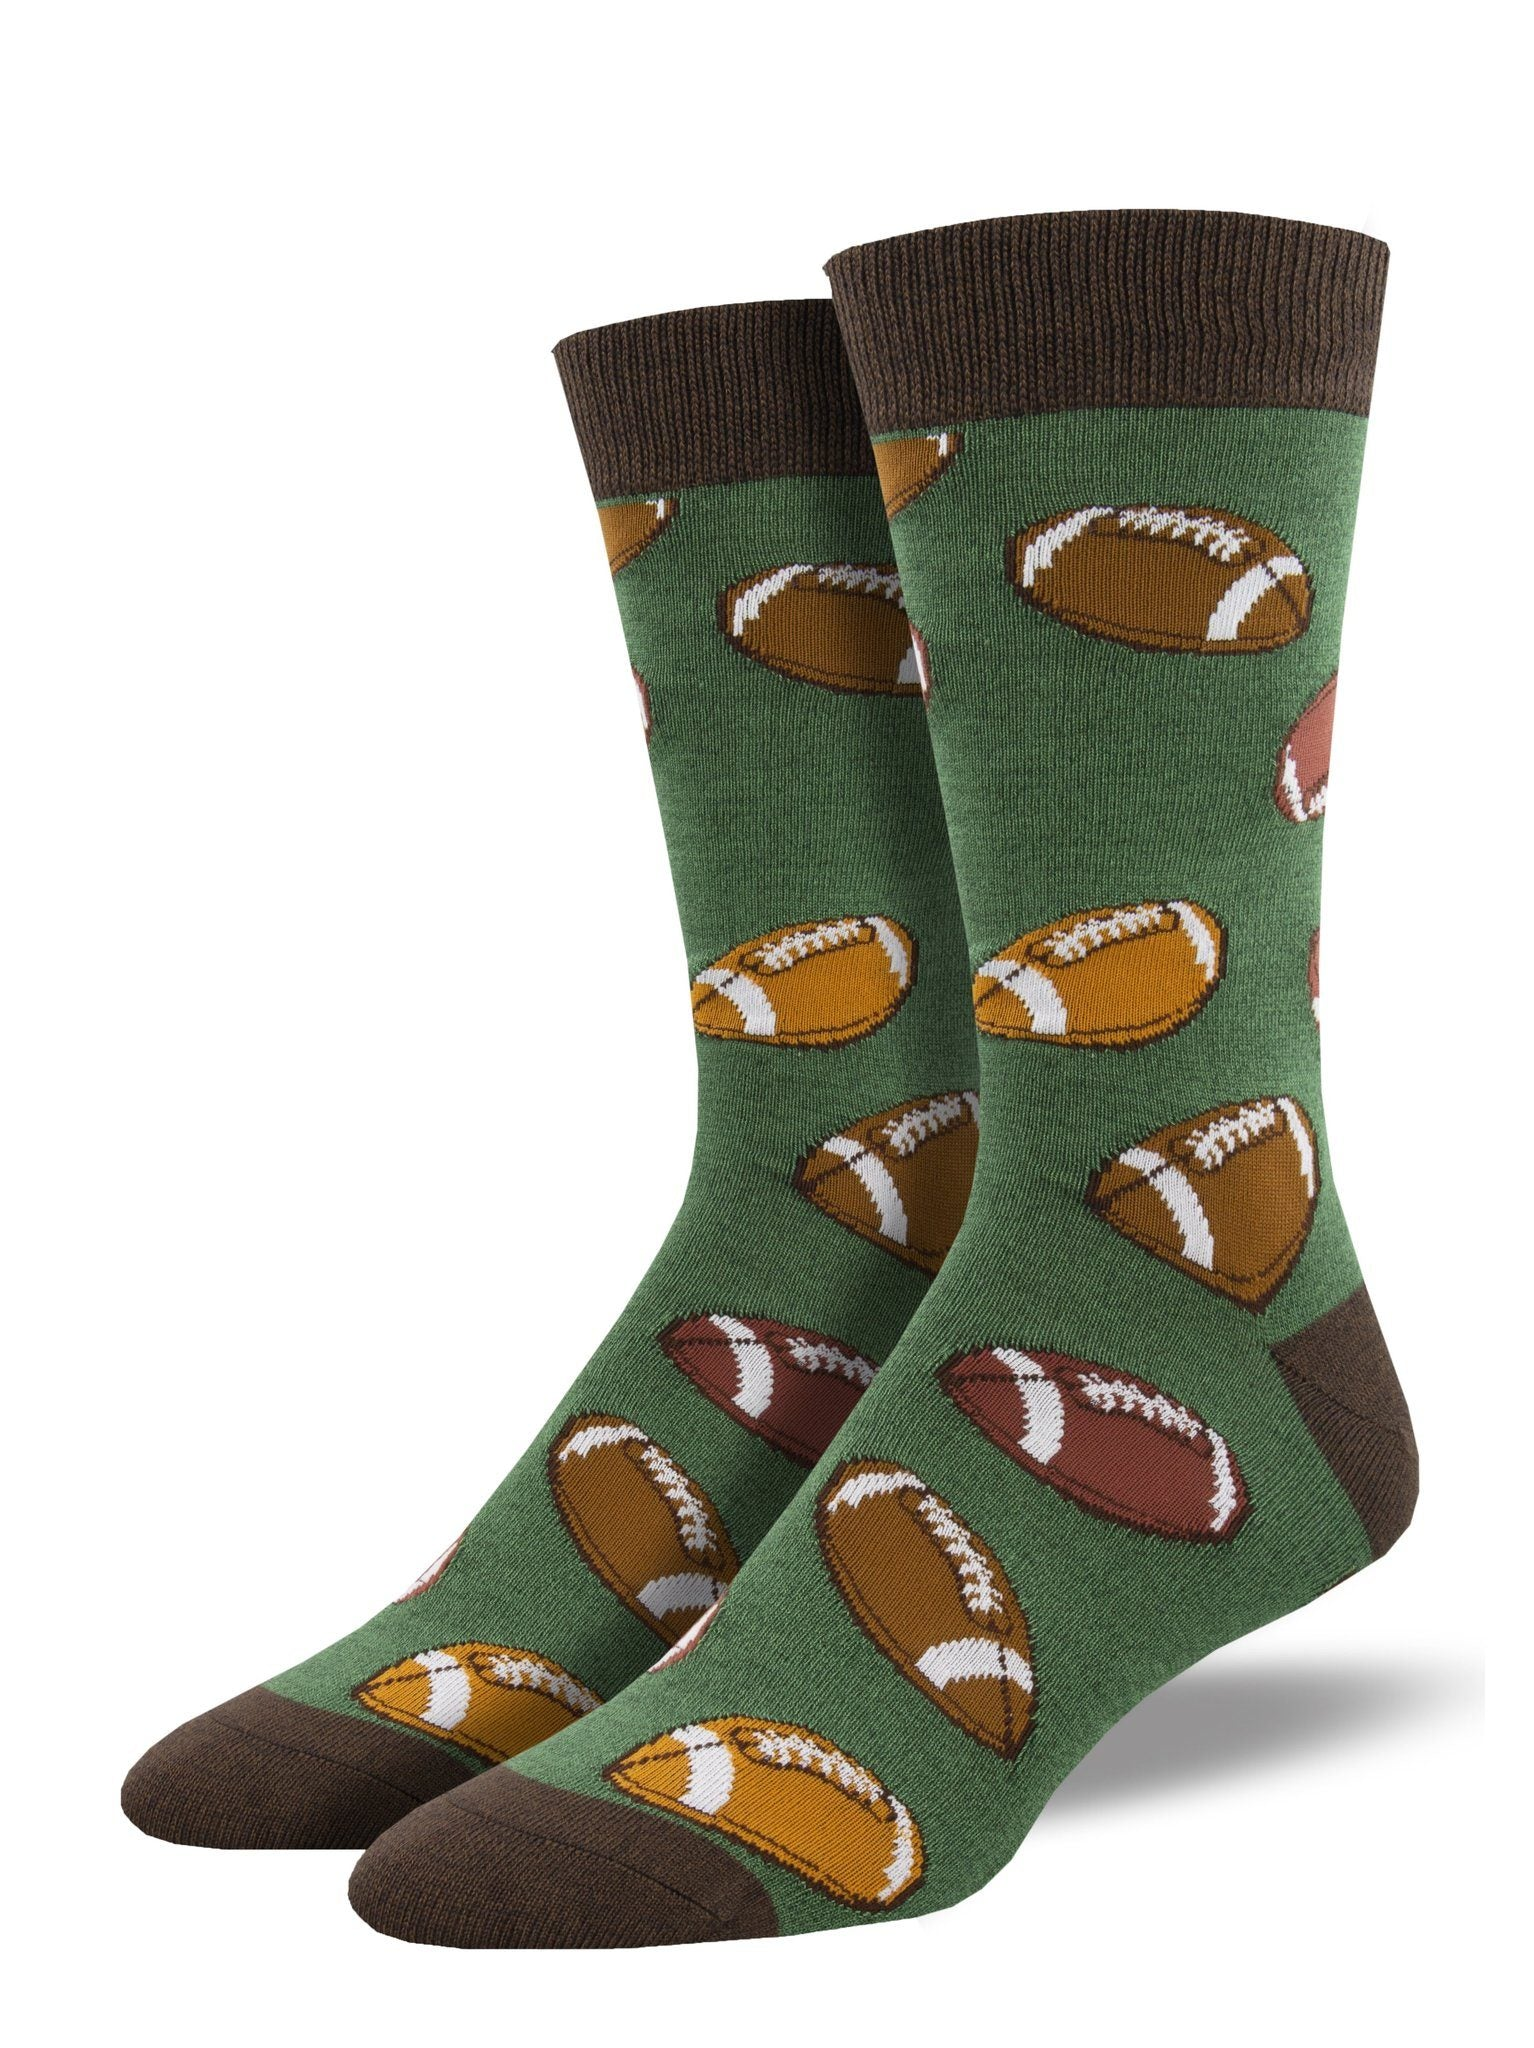 Socksmith - Bamboo Hut Hut Hike Crew Socks | Men's - Knock Your Socks Off